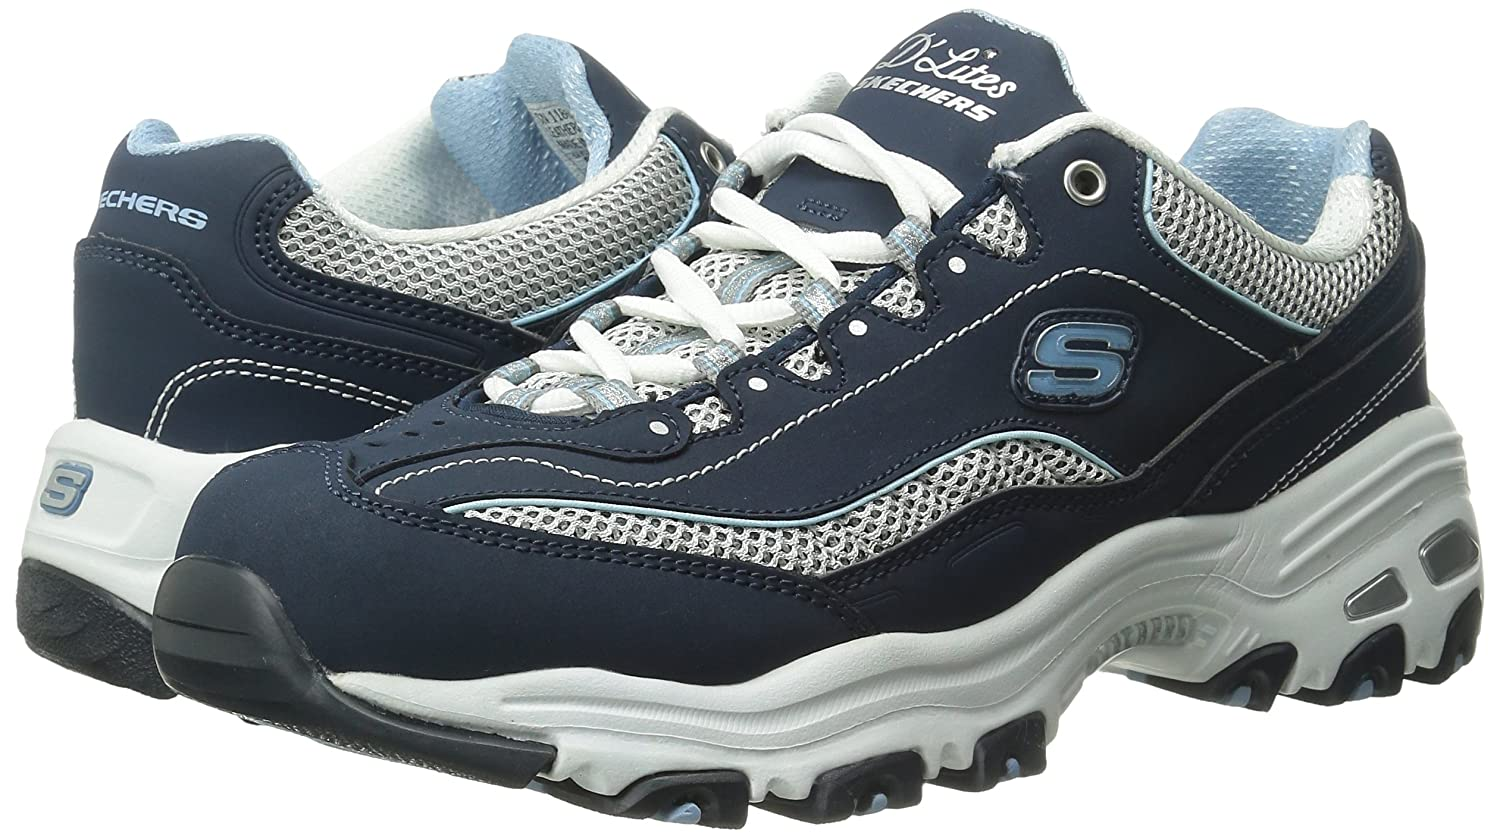 Skechers-D-039-Lites-Women-039-s-Casual-Lightweight-Fashion-Sneakers-Athletic-Shoes thumbnail 115